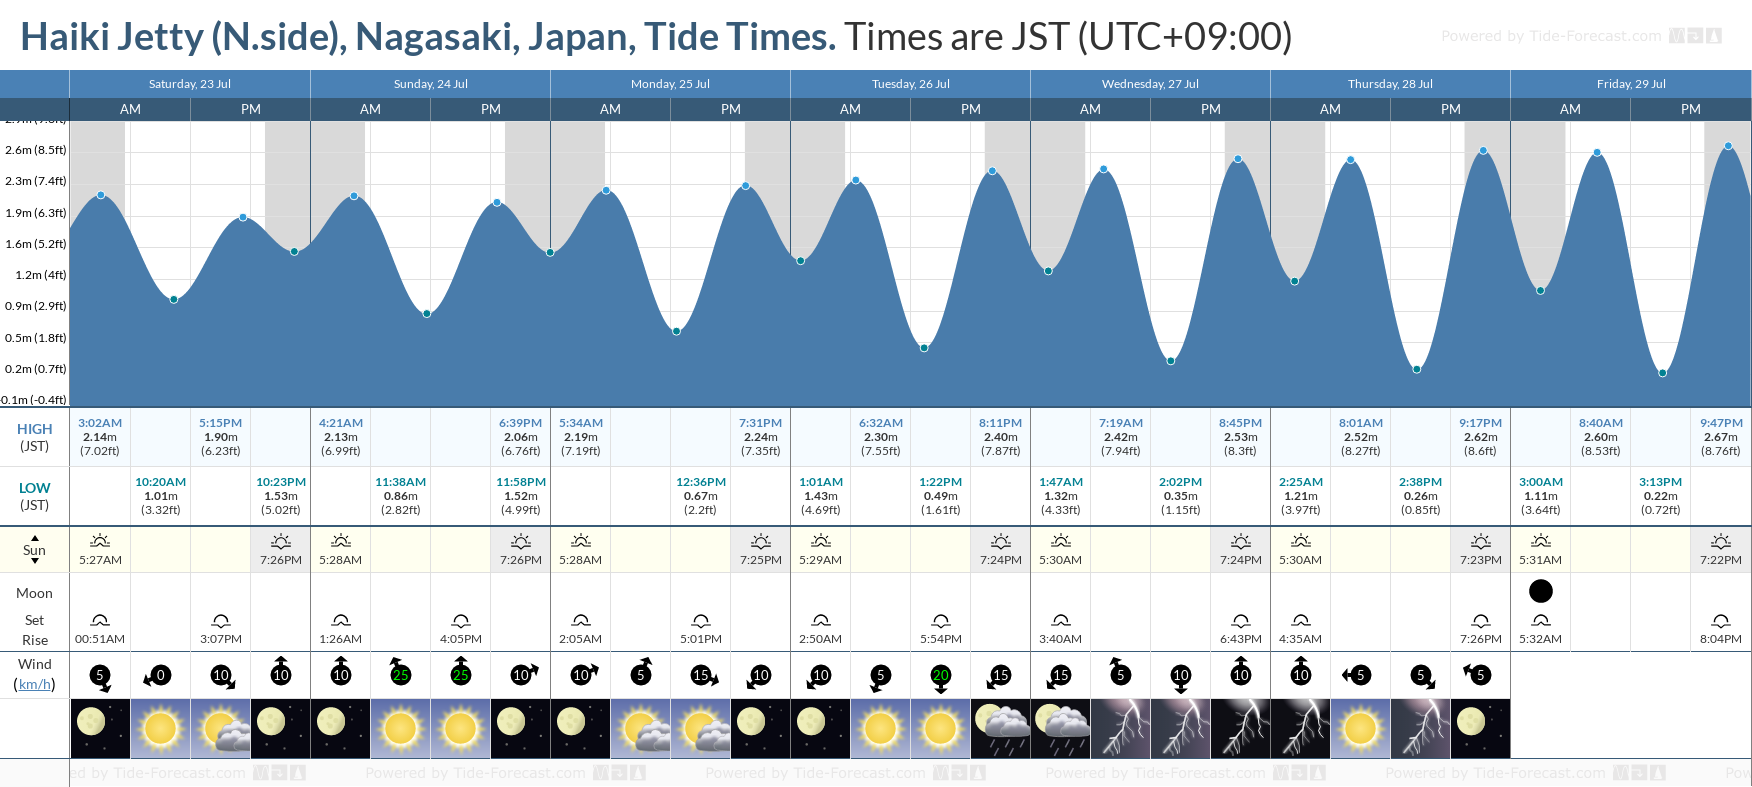 Haiki Jetty (N.side), Nagasaki, Japan Tide Chart including high and low tide tide times for the next 7 days